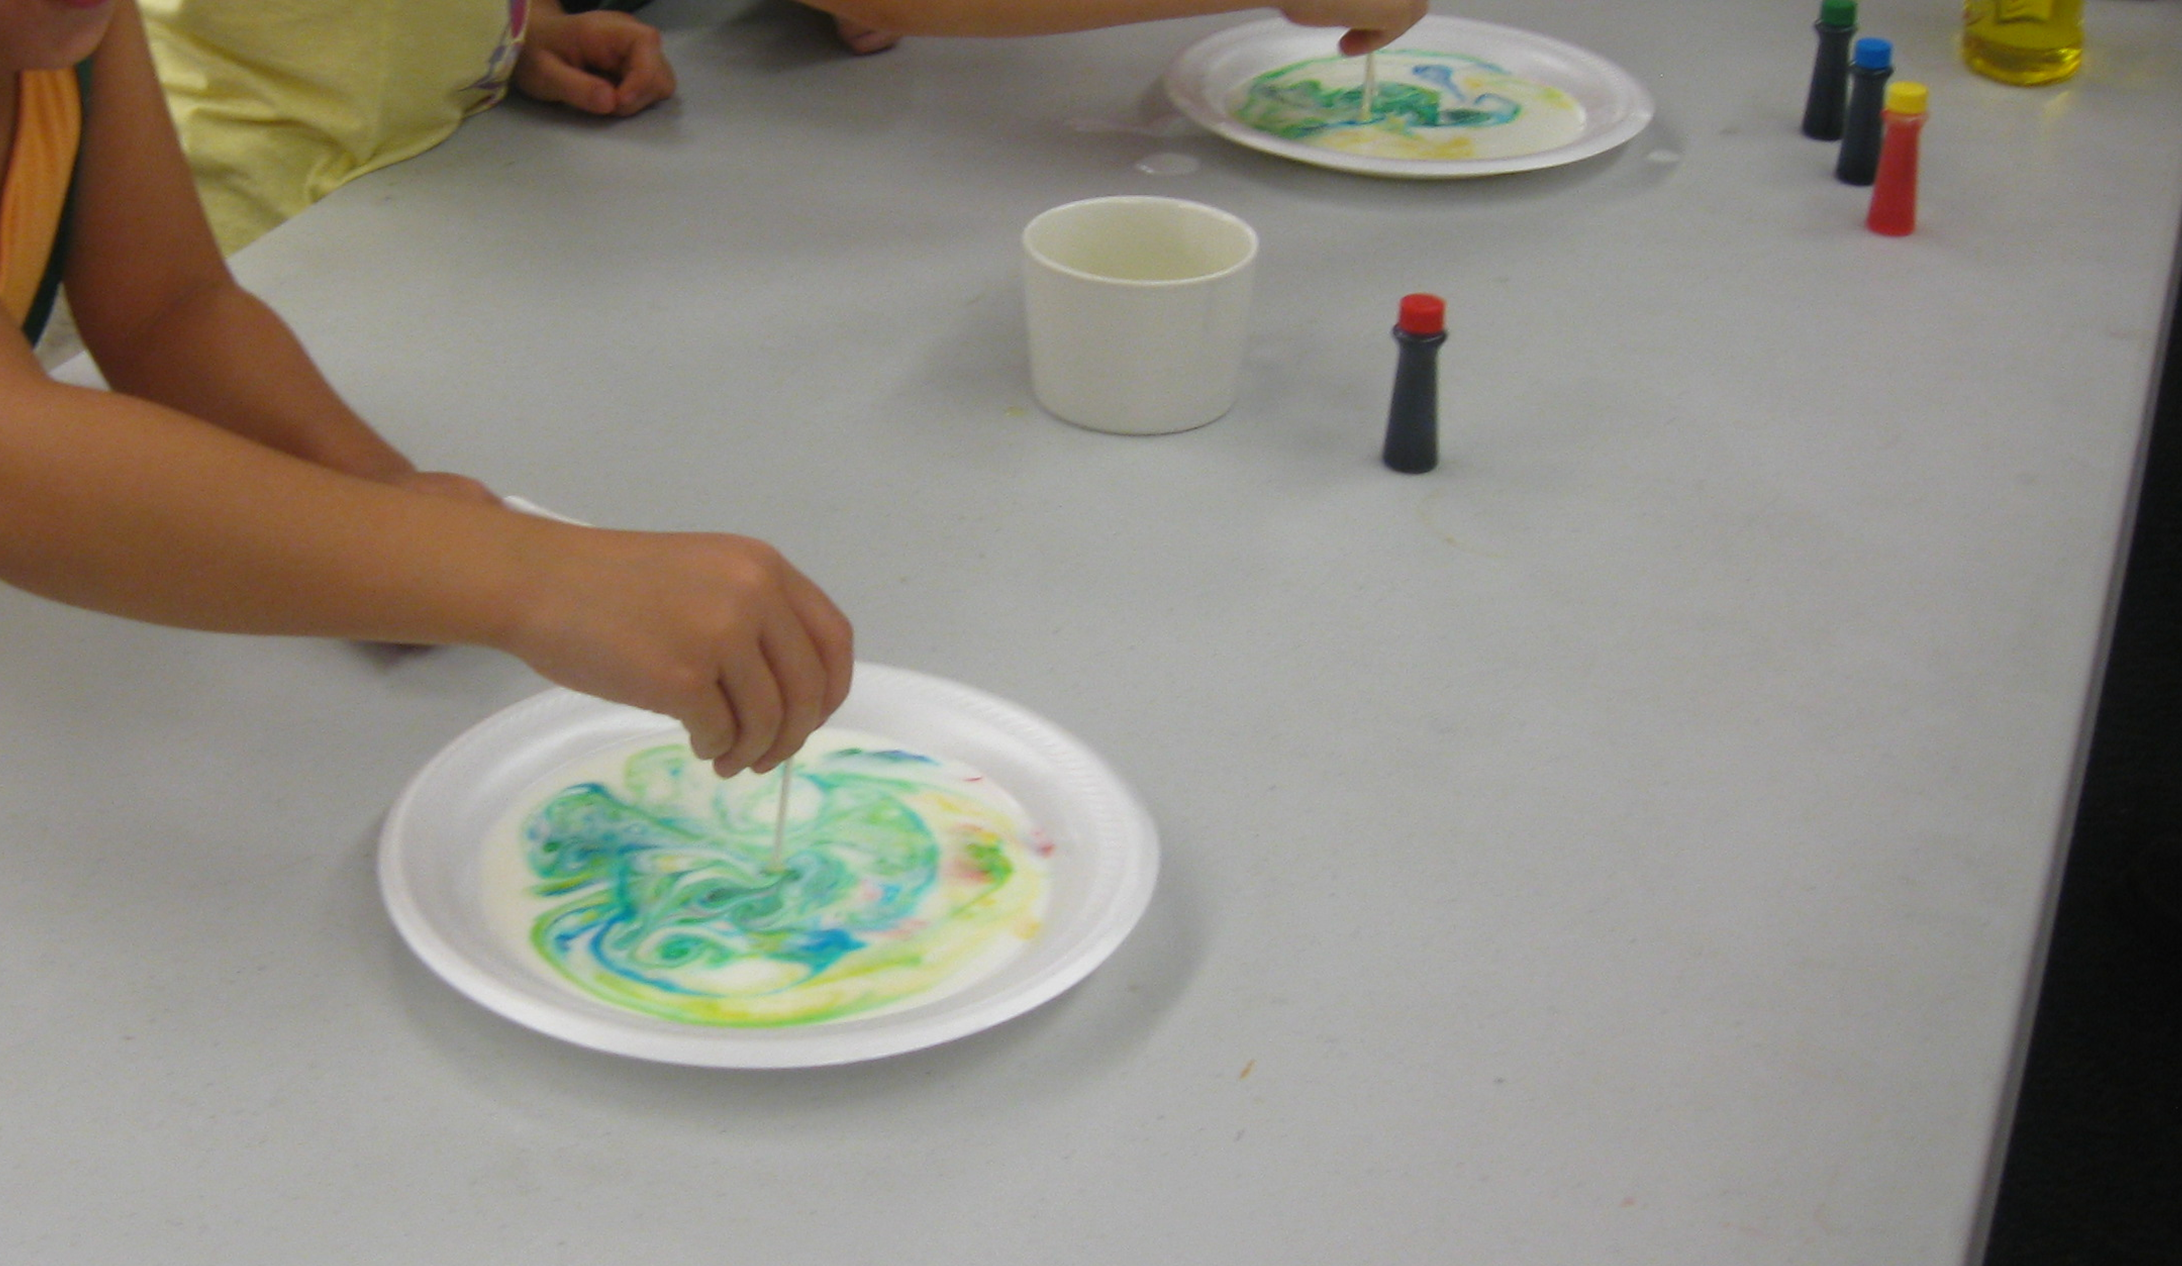 An image of food coloring in milk